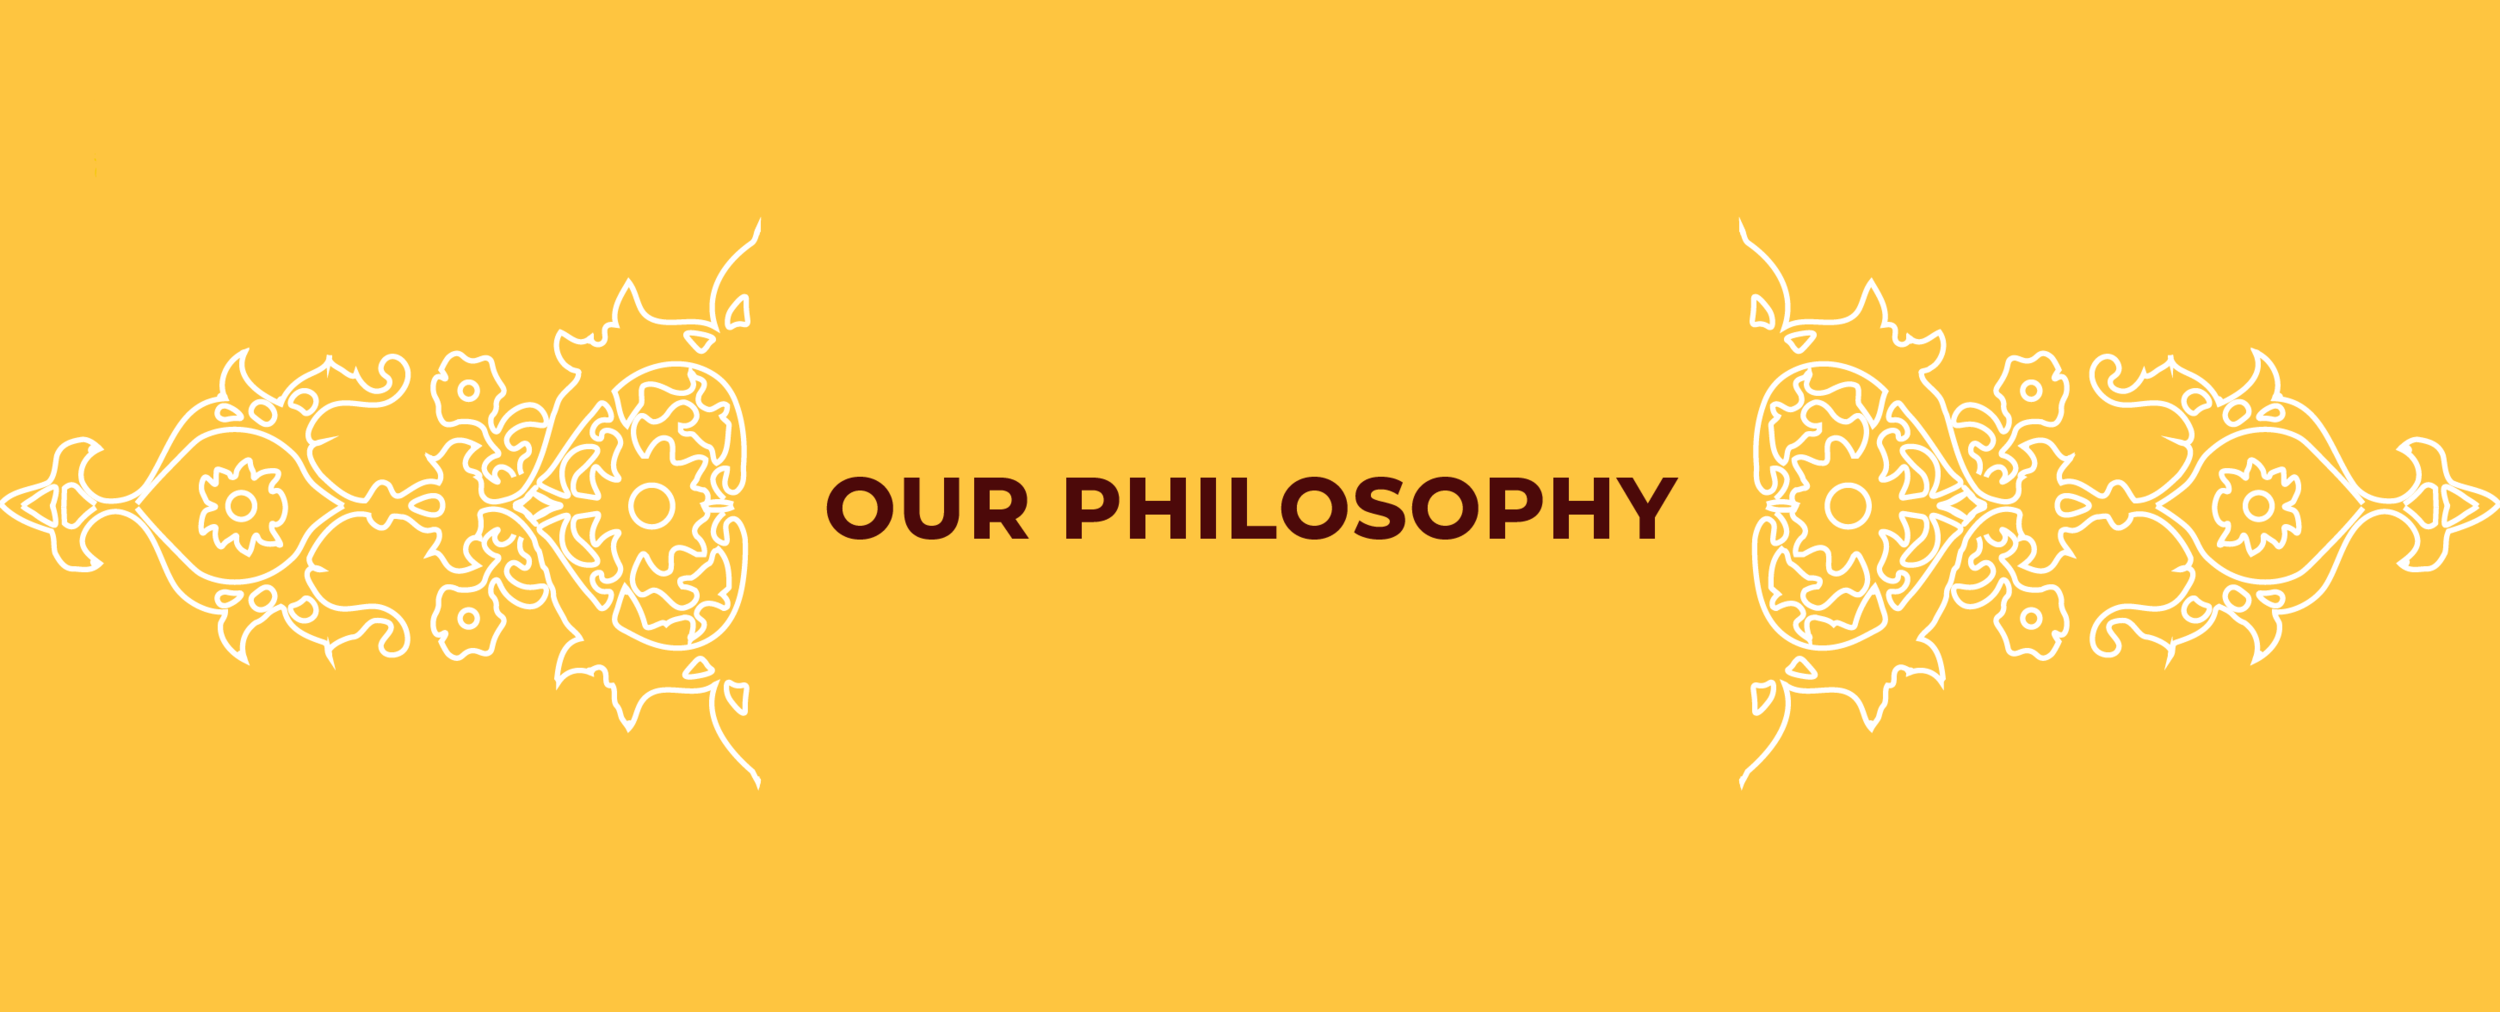 our philosophy banner-01.png